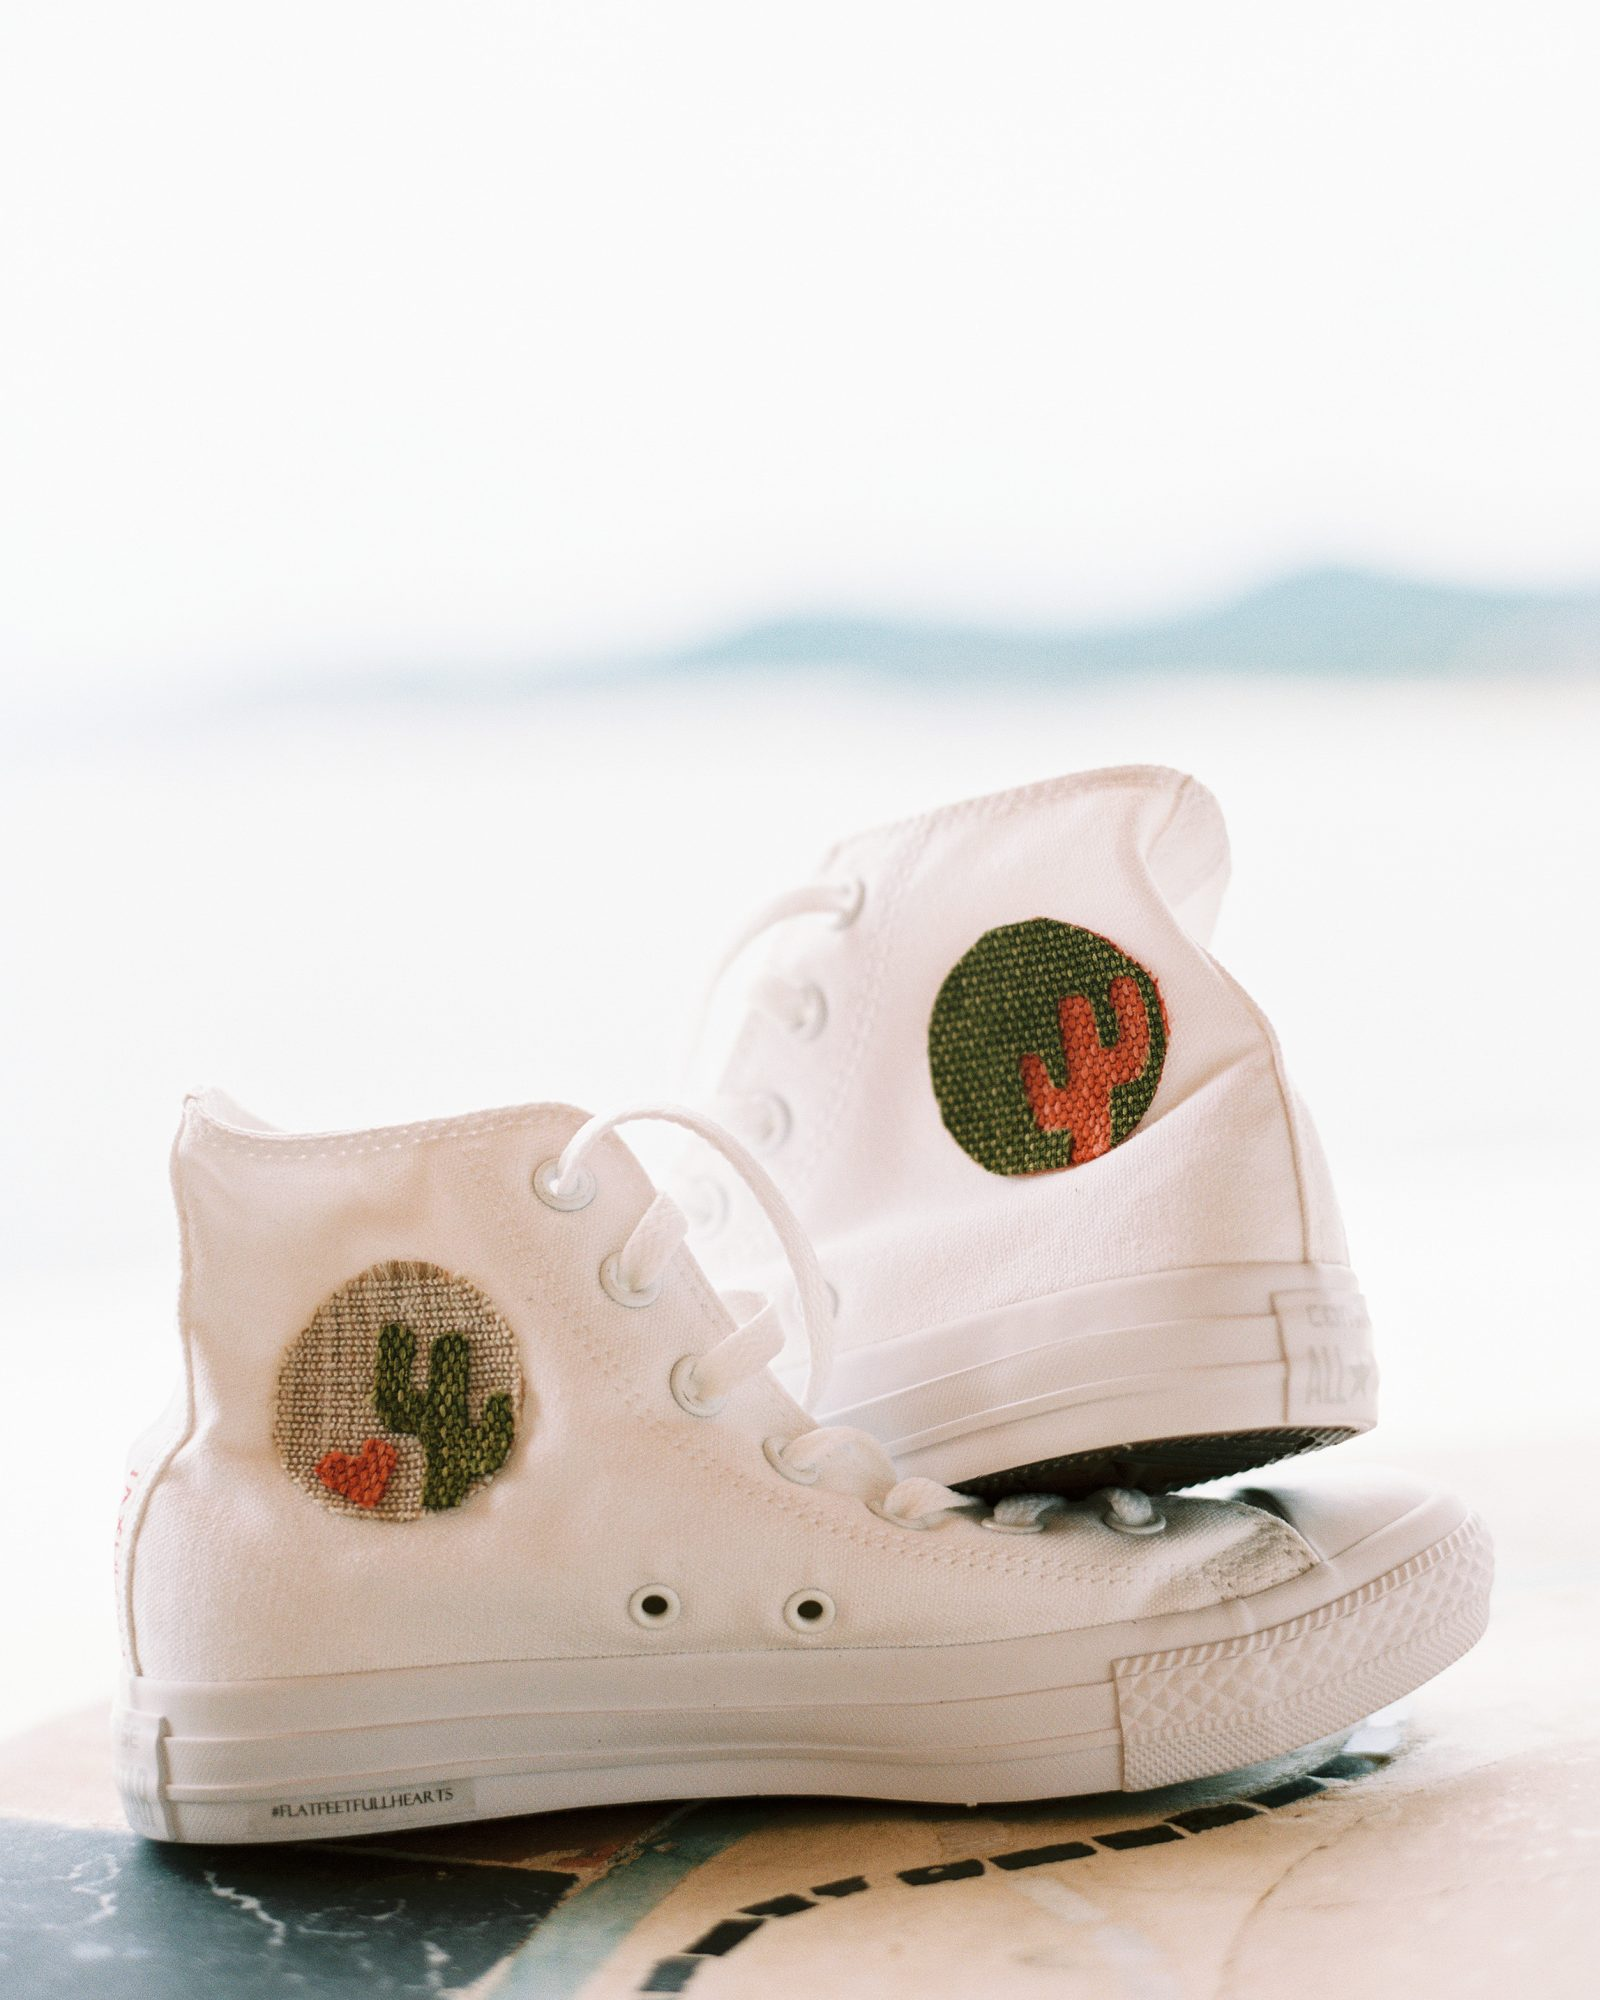 rebecca-eji-wedding-sneakers-091-s113057-0616.jpg